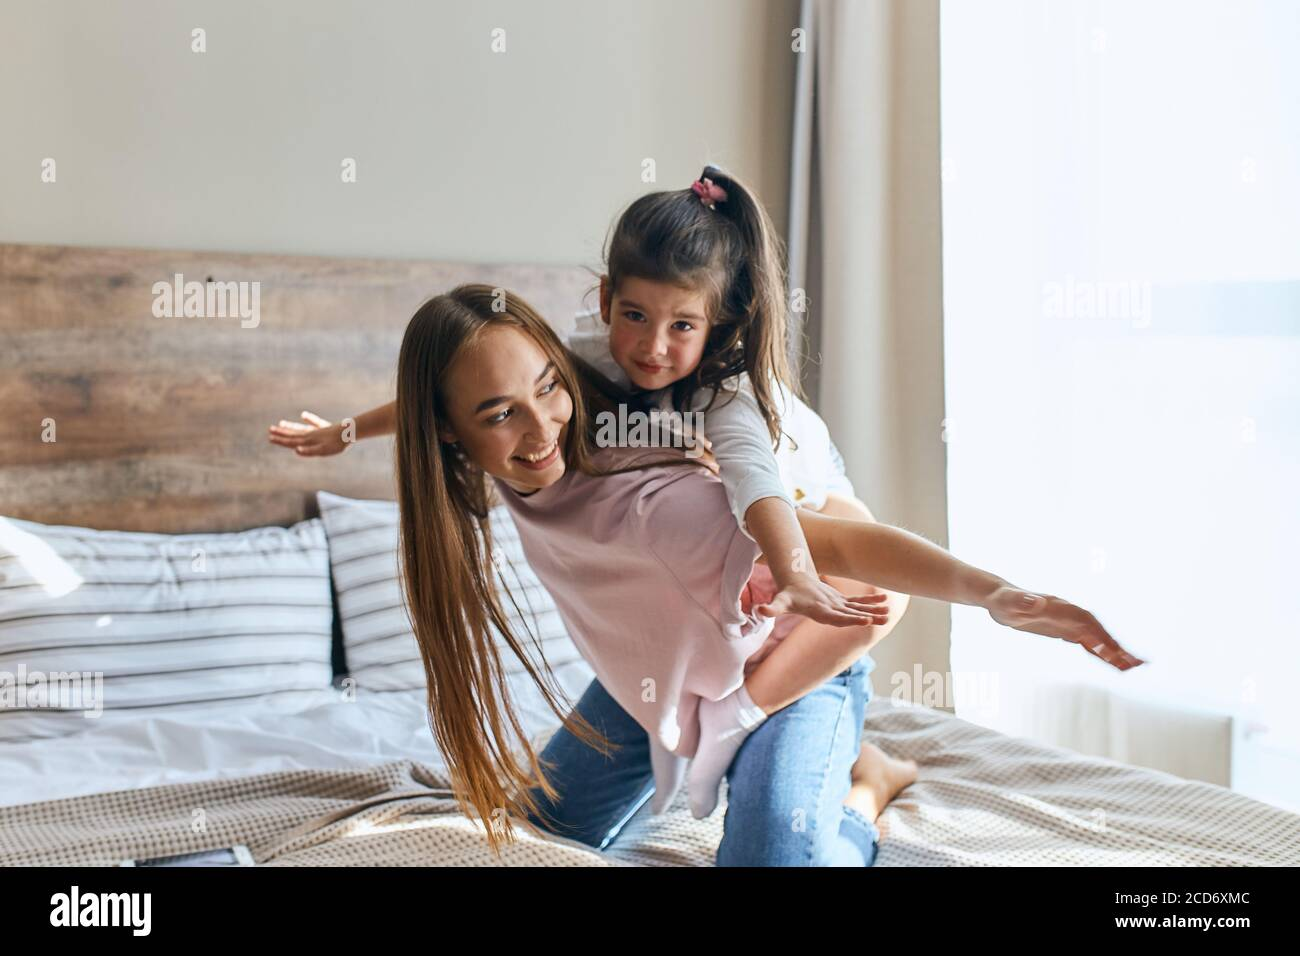 Attractive charming little girl on a piggy back ride with lovely young mom, looking at camera with calm face, woman with long hair playing with child Stock Photo